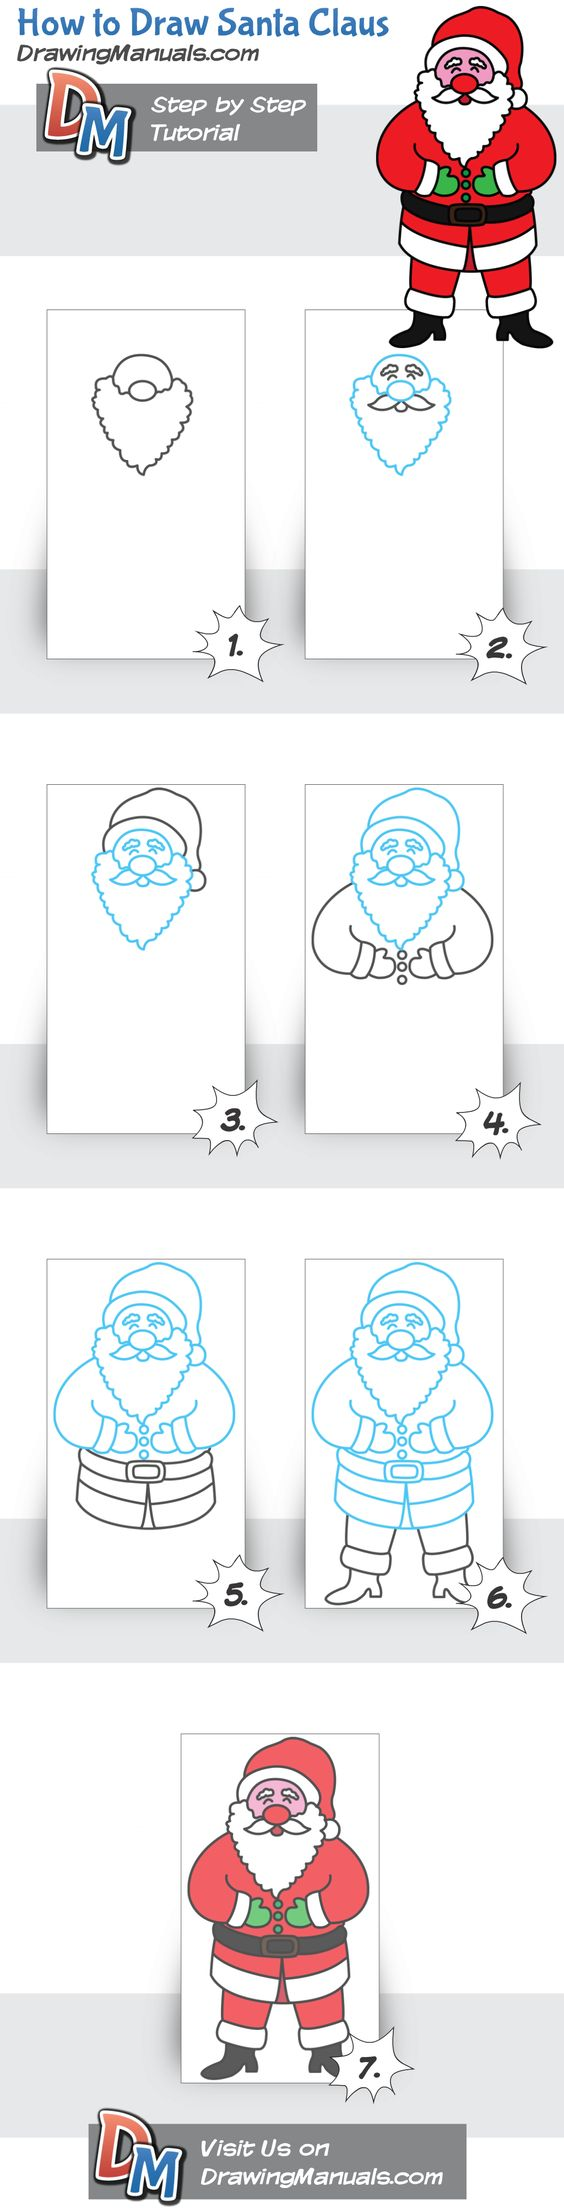 how to draw a santa claus 52weeksofhowtodraw christmas diy